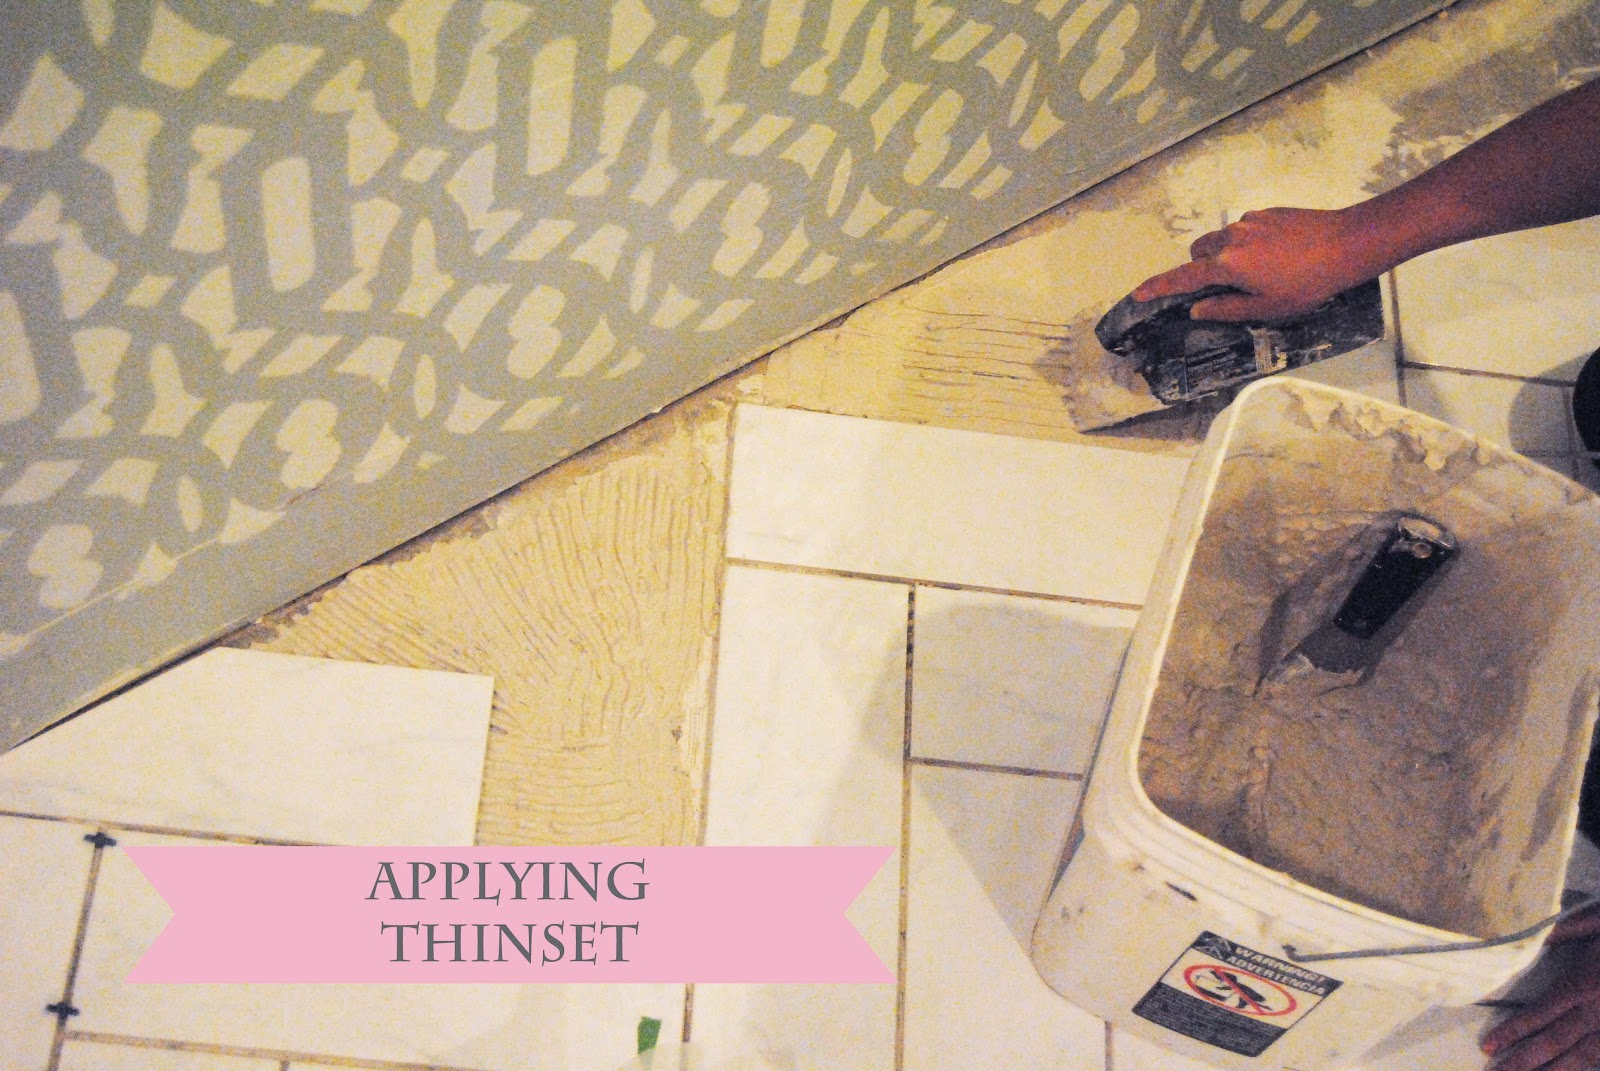 Visual eye candy how to tile a herringbone floor part i -  Scraping The Thinset With The Trowel